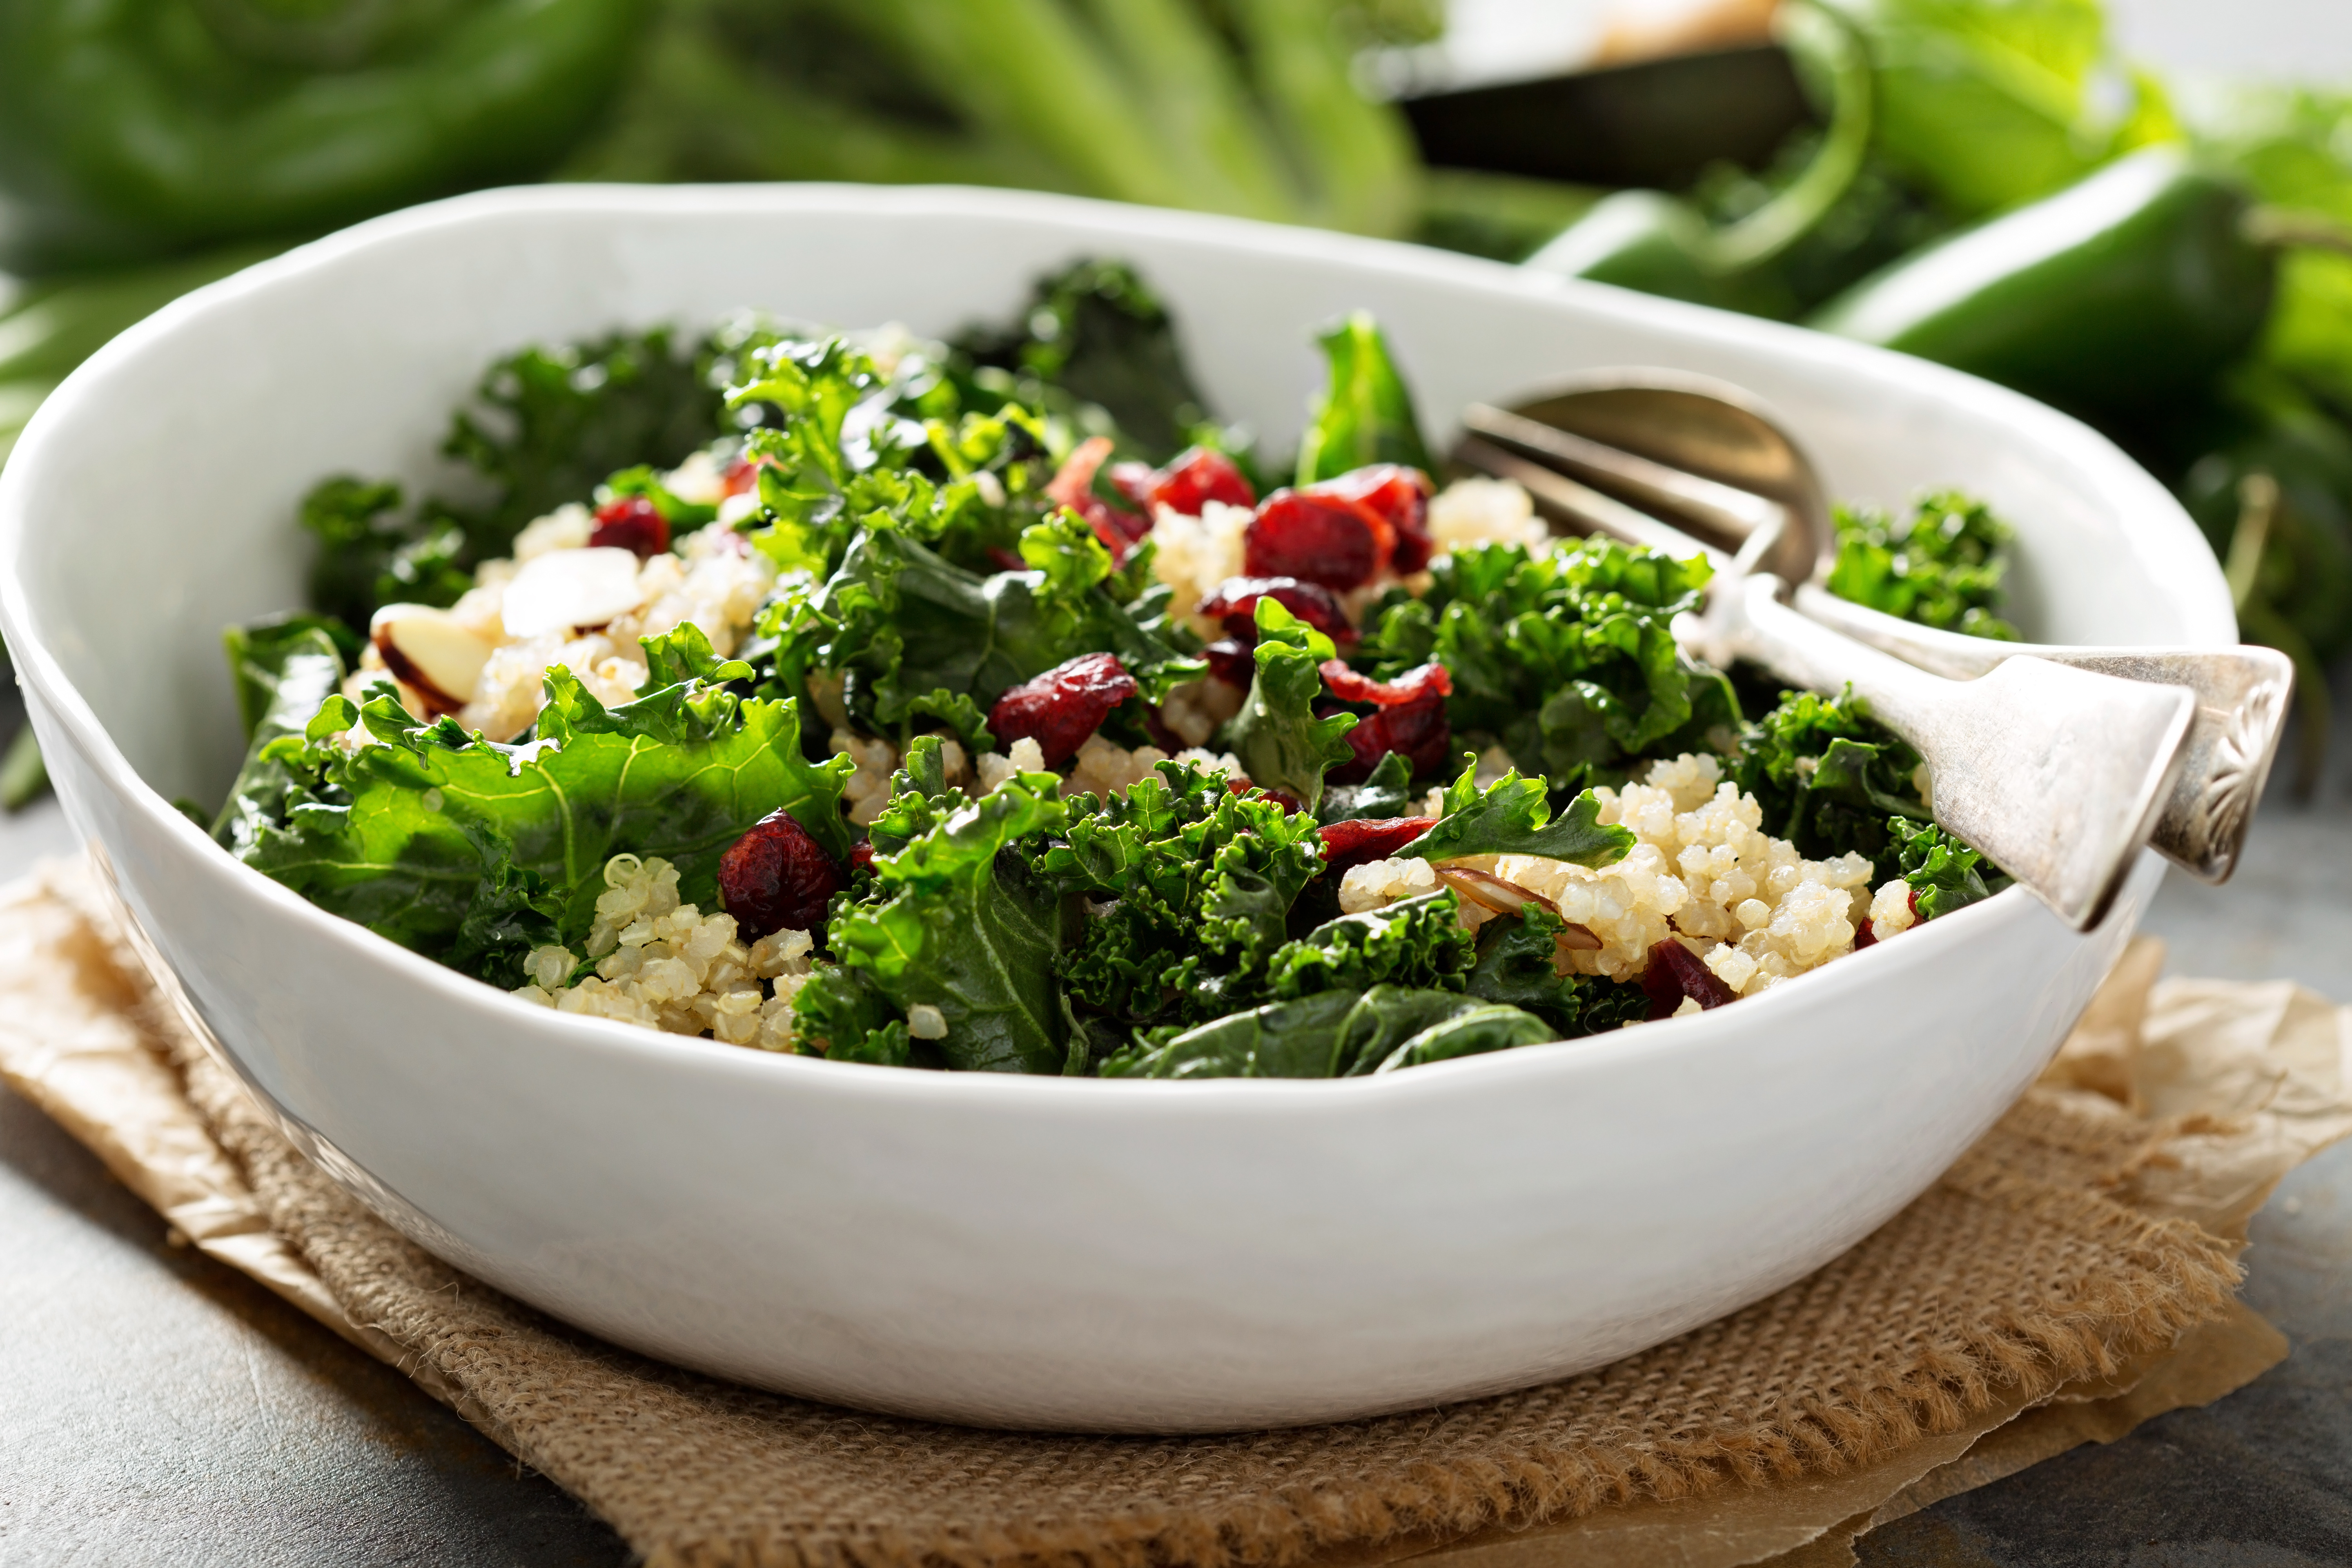 kale salad for antiageing